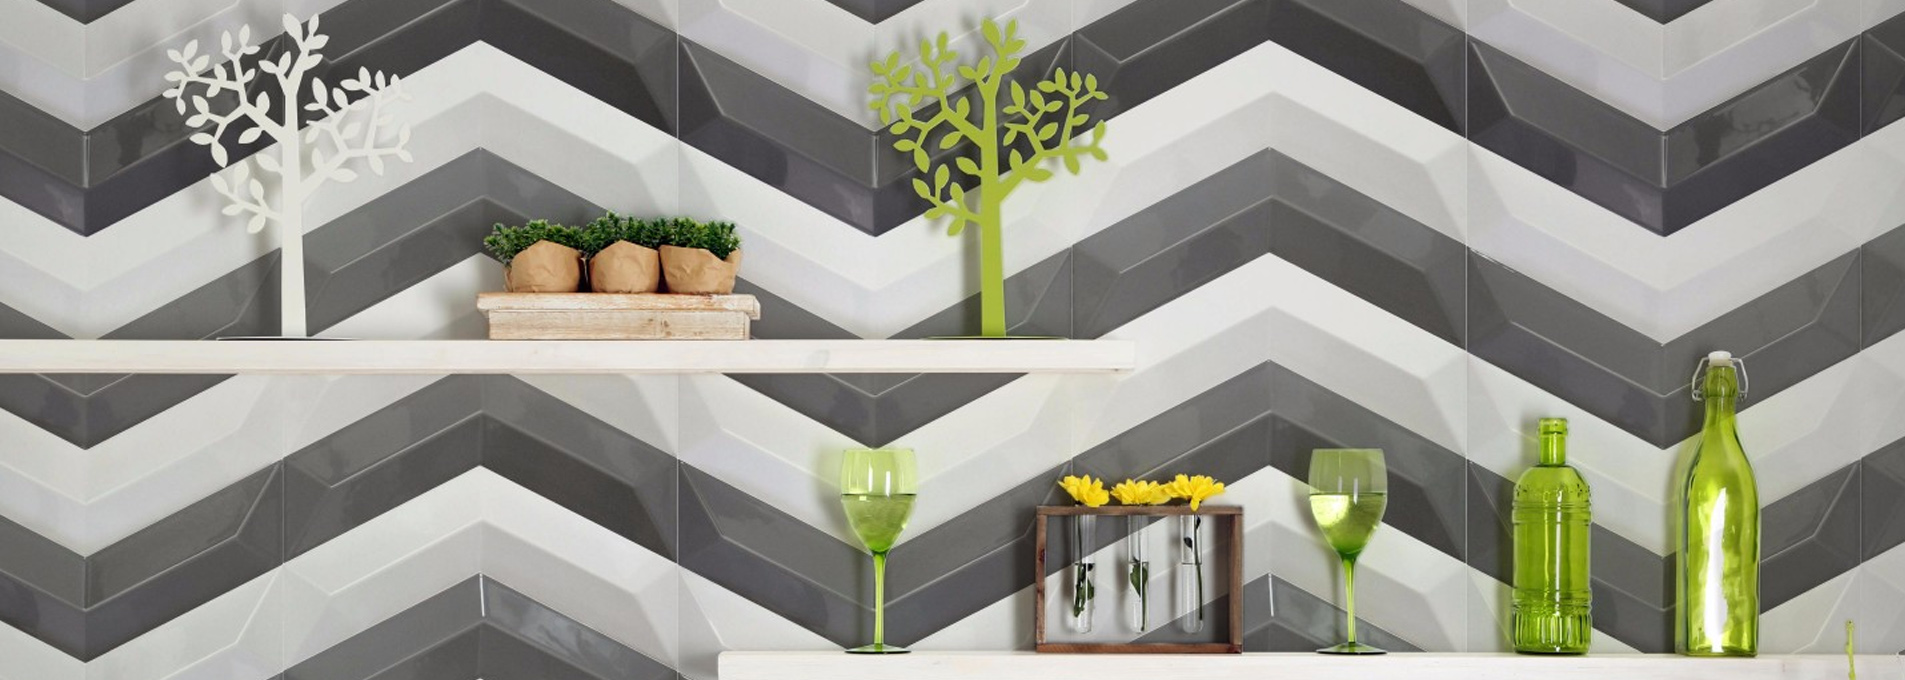 chevron wall tiles Banner